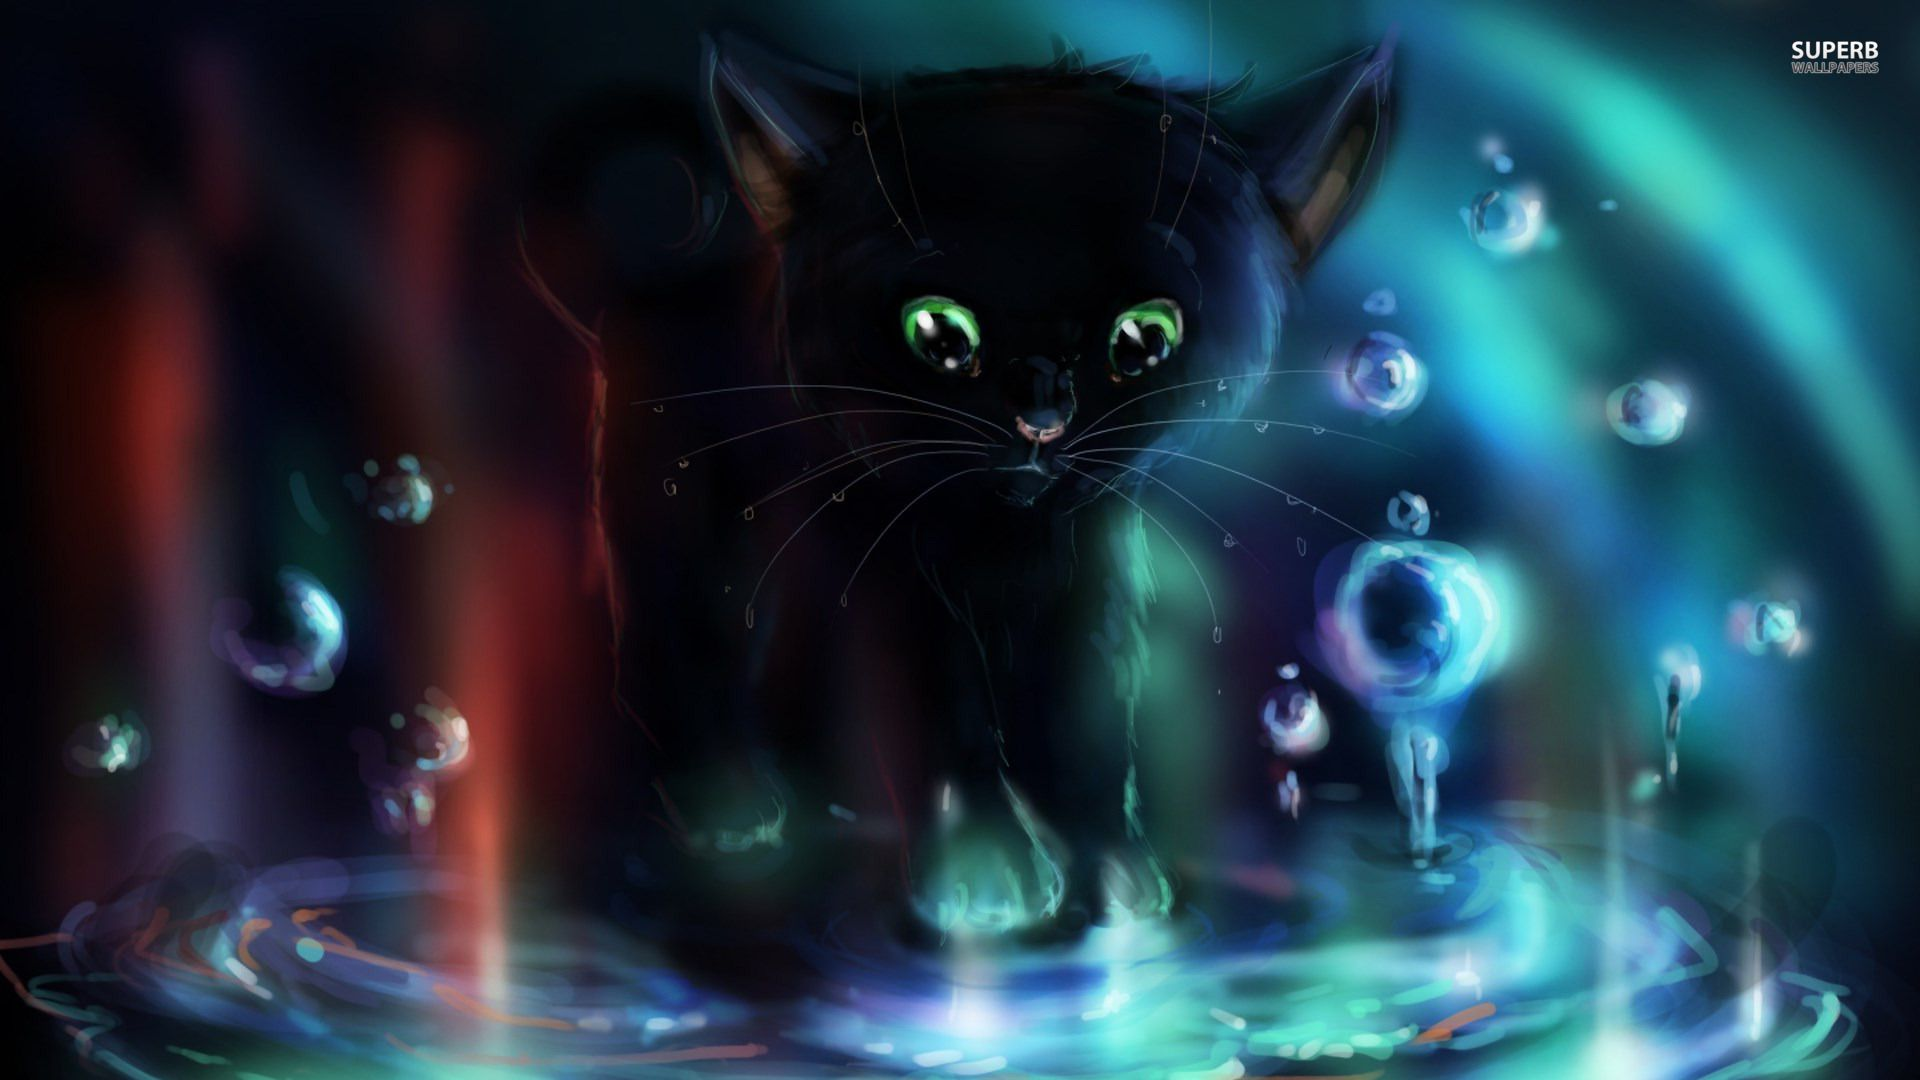 Black Kitten Anime Cat wallpaper, Cute kitten gif